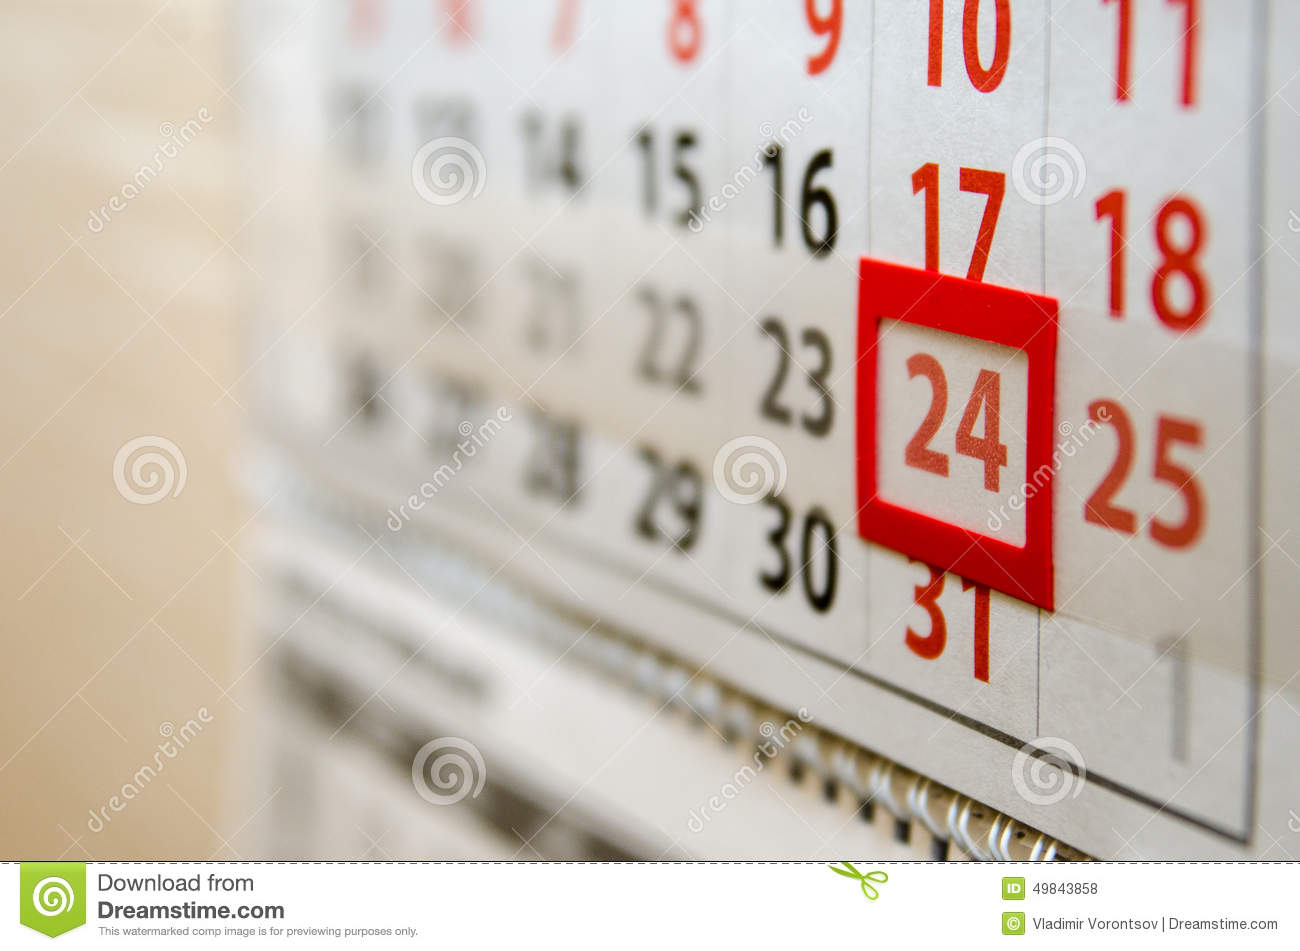 Today's date calendar in Perth